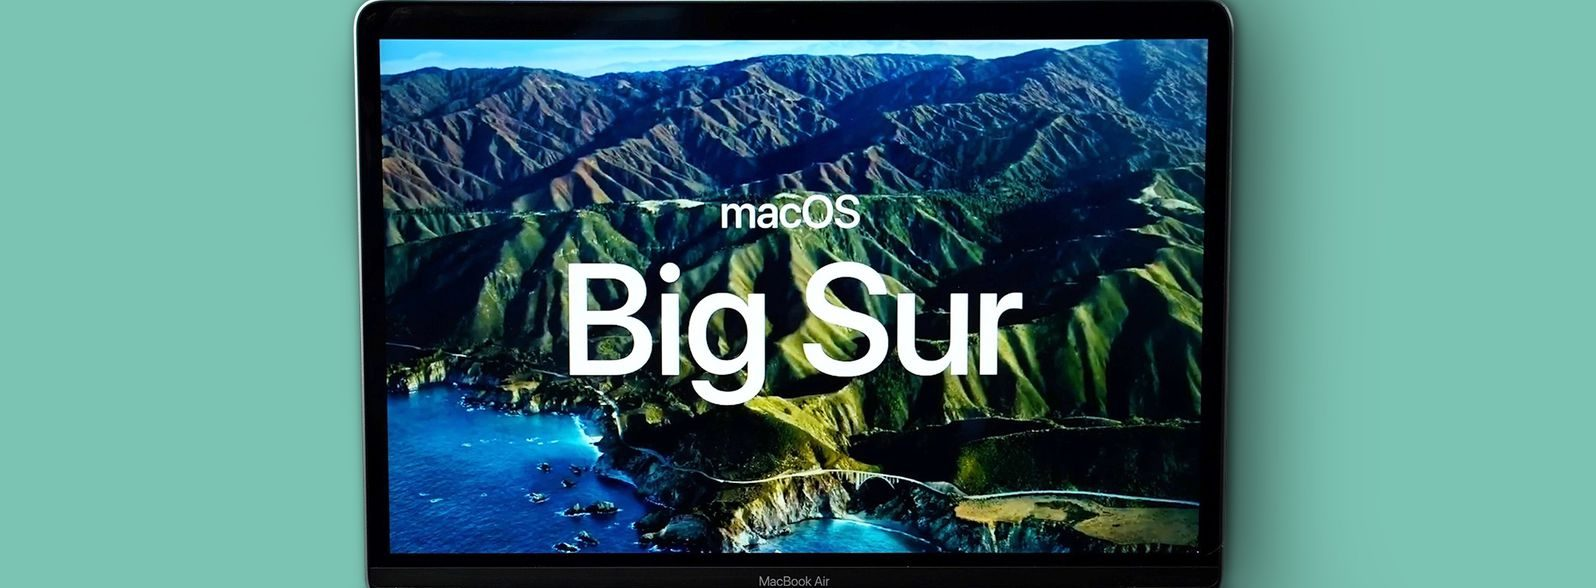 Can Your PC Support The New macOS Big Sur? Find Out Here